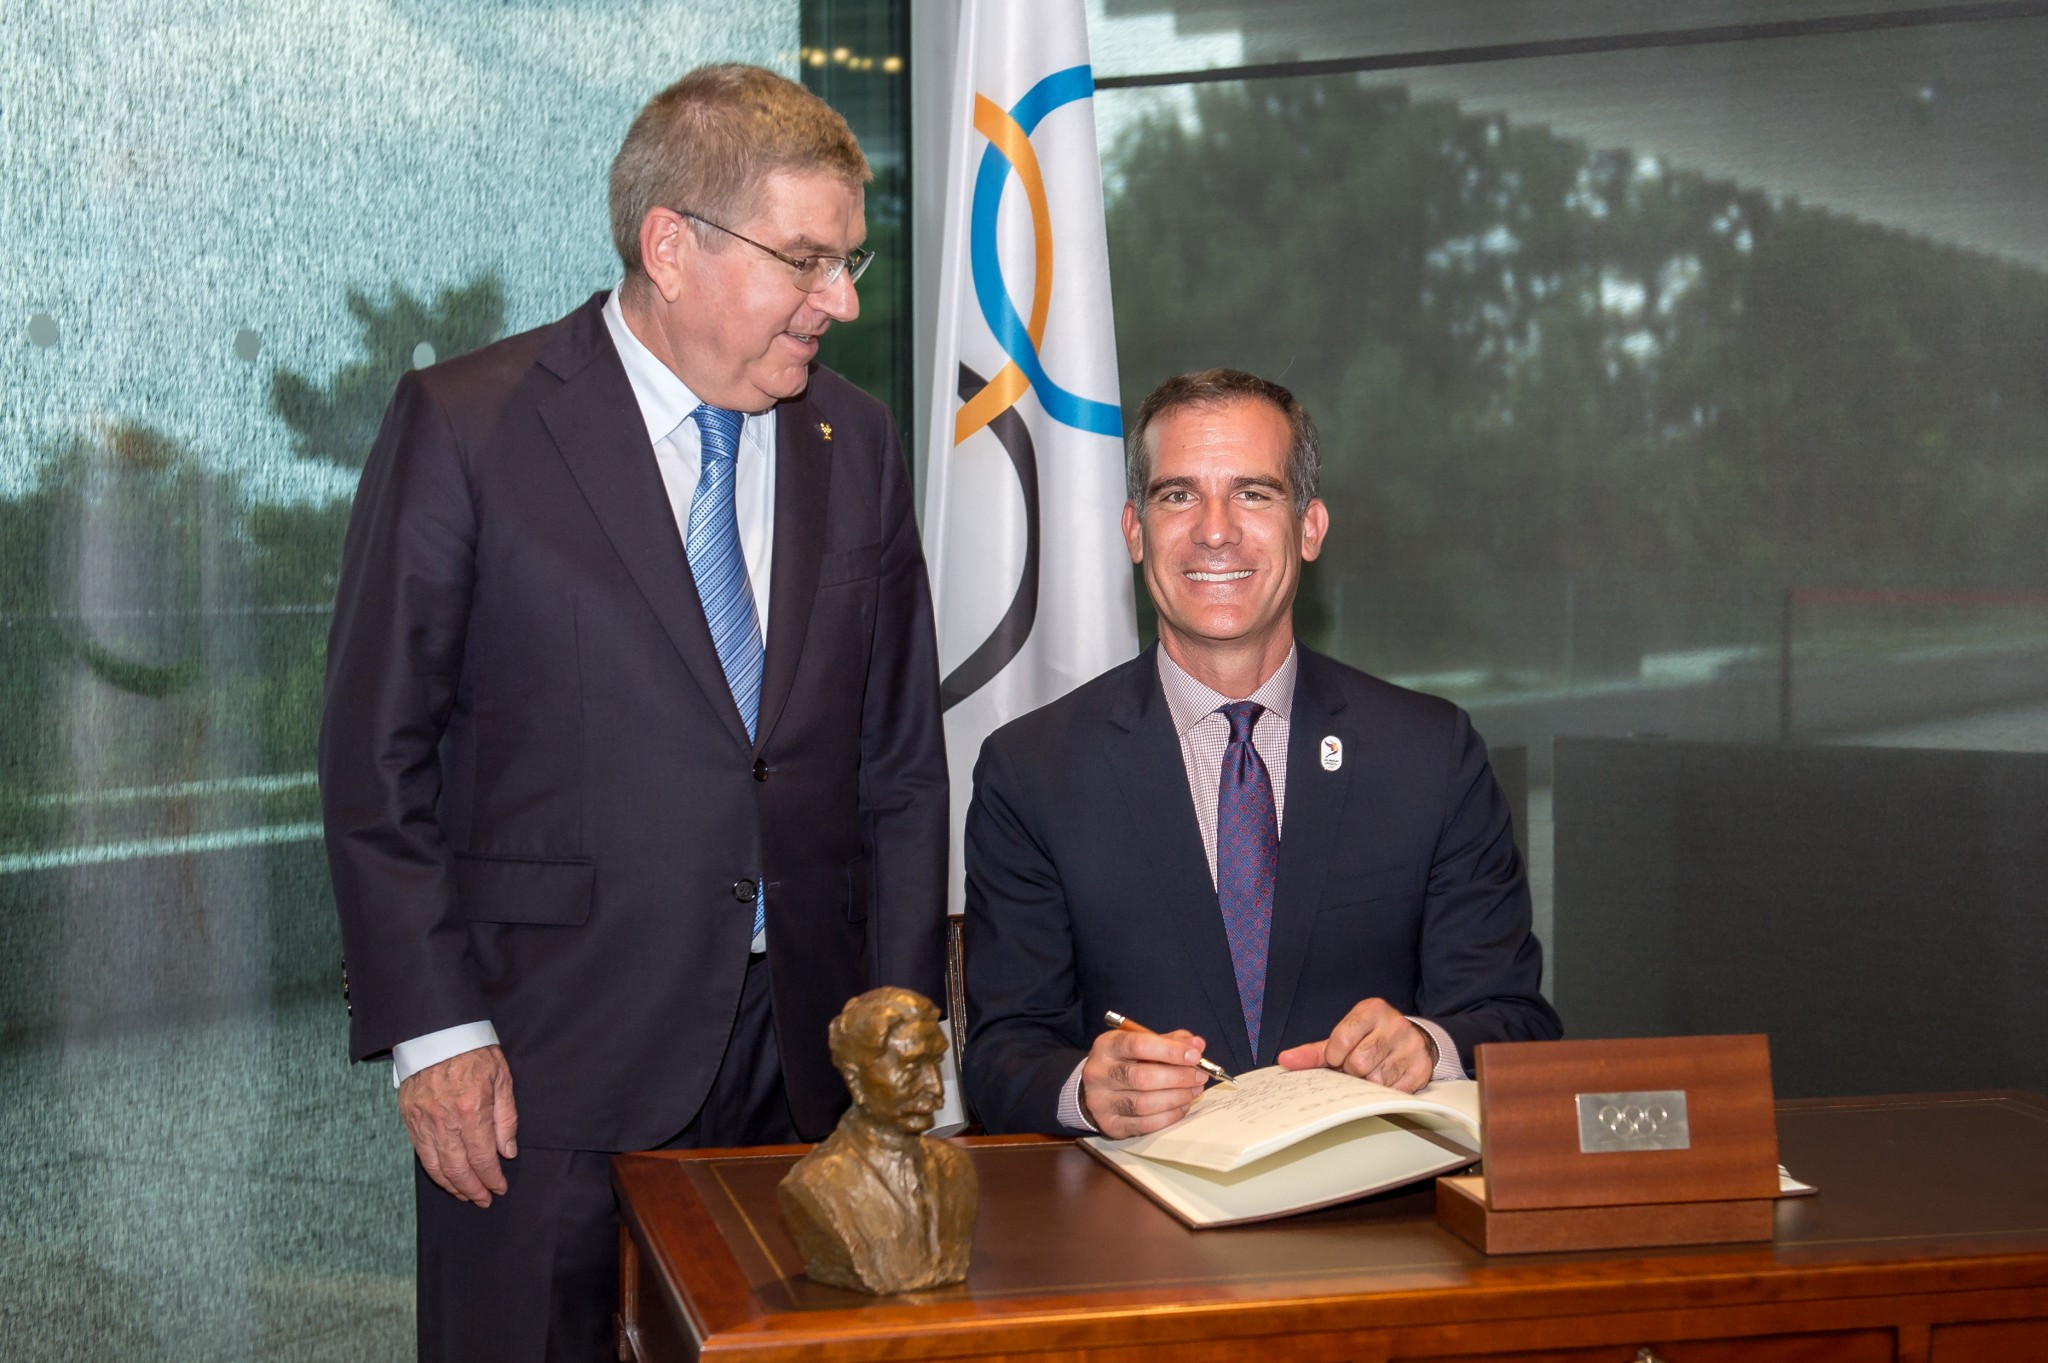 Negotiations took place between the IOC-led Thomas Bach and the Eric Garcetti spearheaded Los Angeles bid ©Getty Images